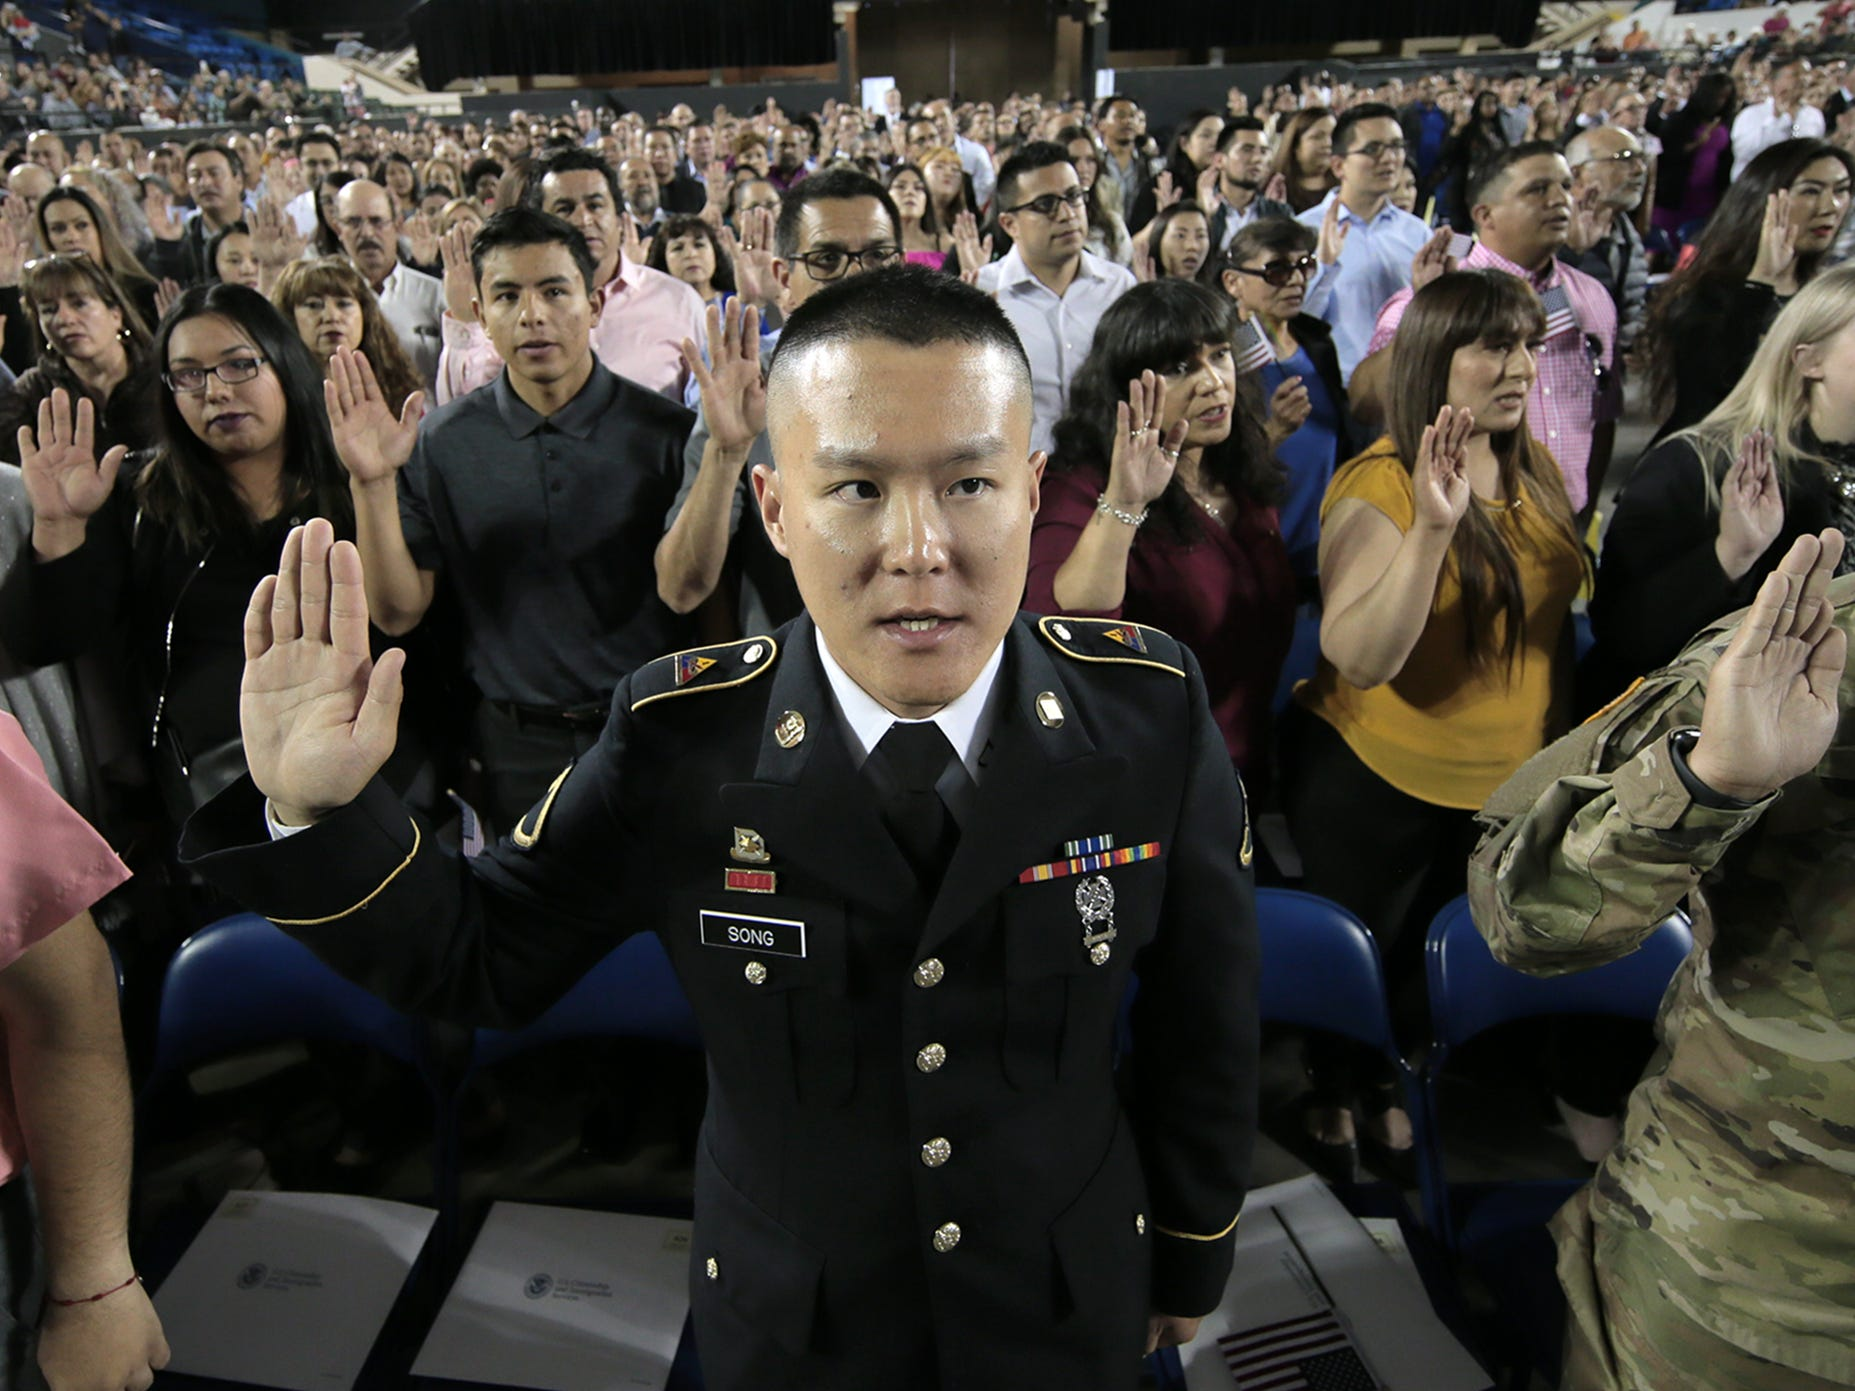 Kyeongjin Song of Korea takes the oath of citizenship Thursday along with 739 other new citizens at the El Paso County Coliseum.